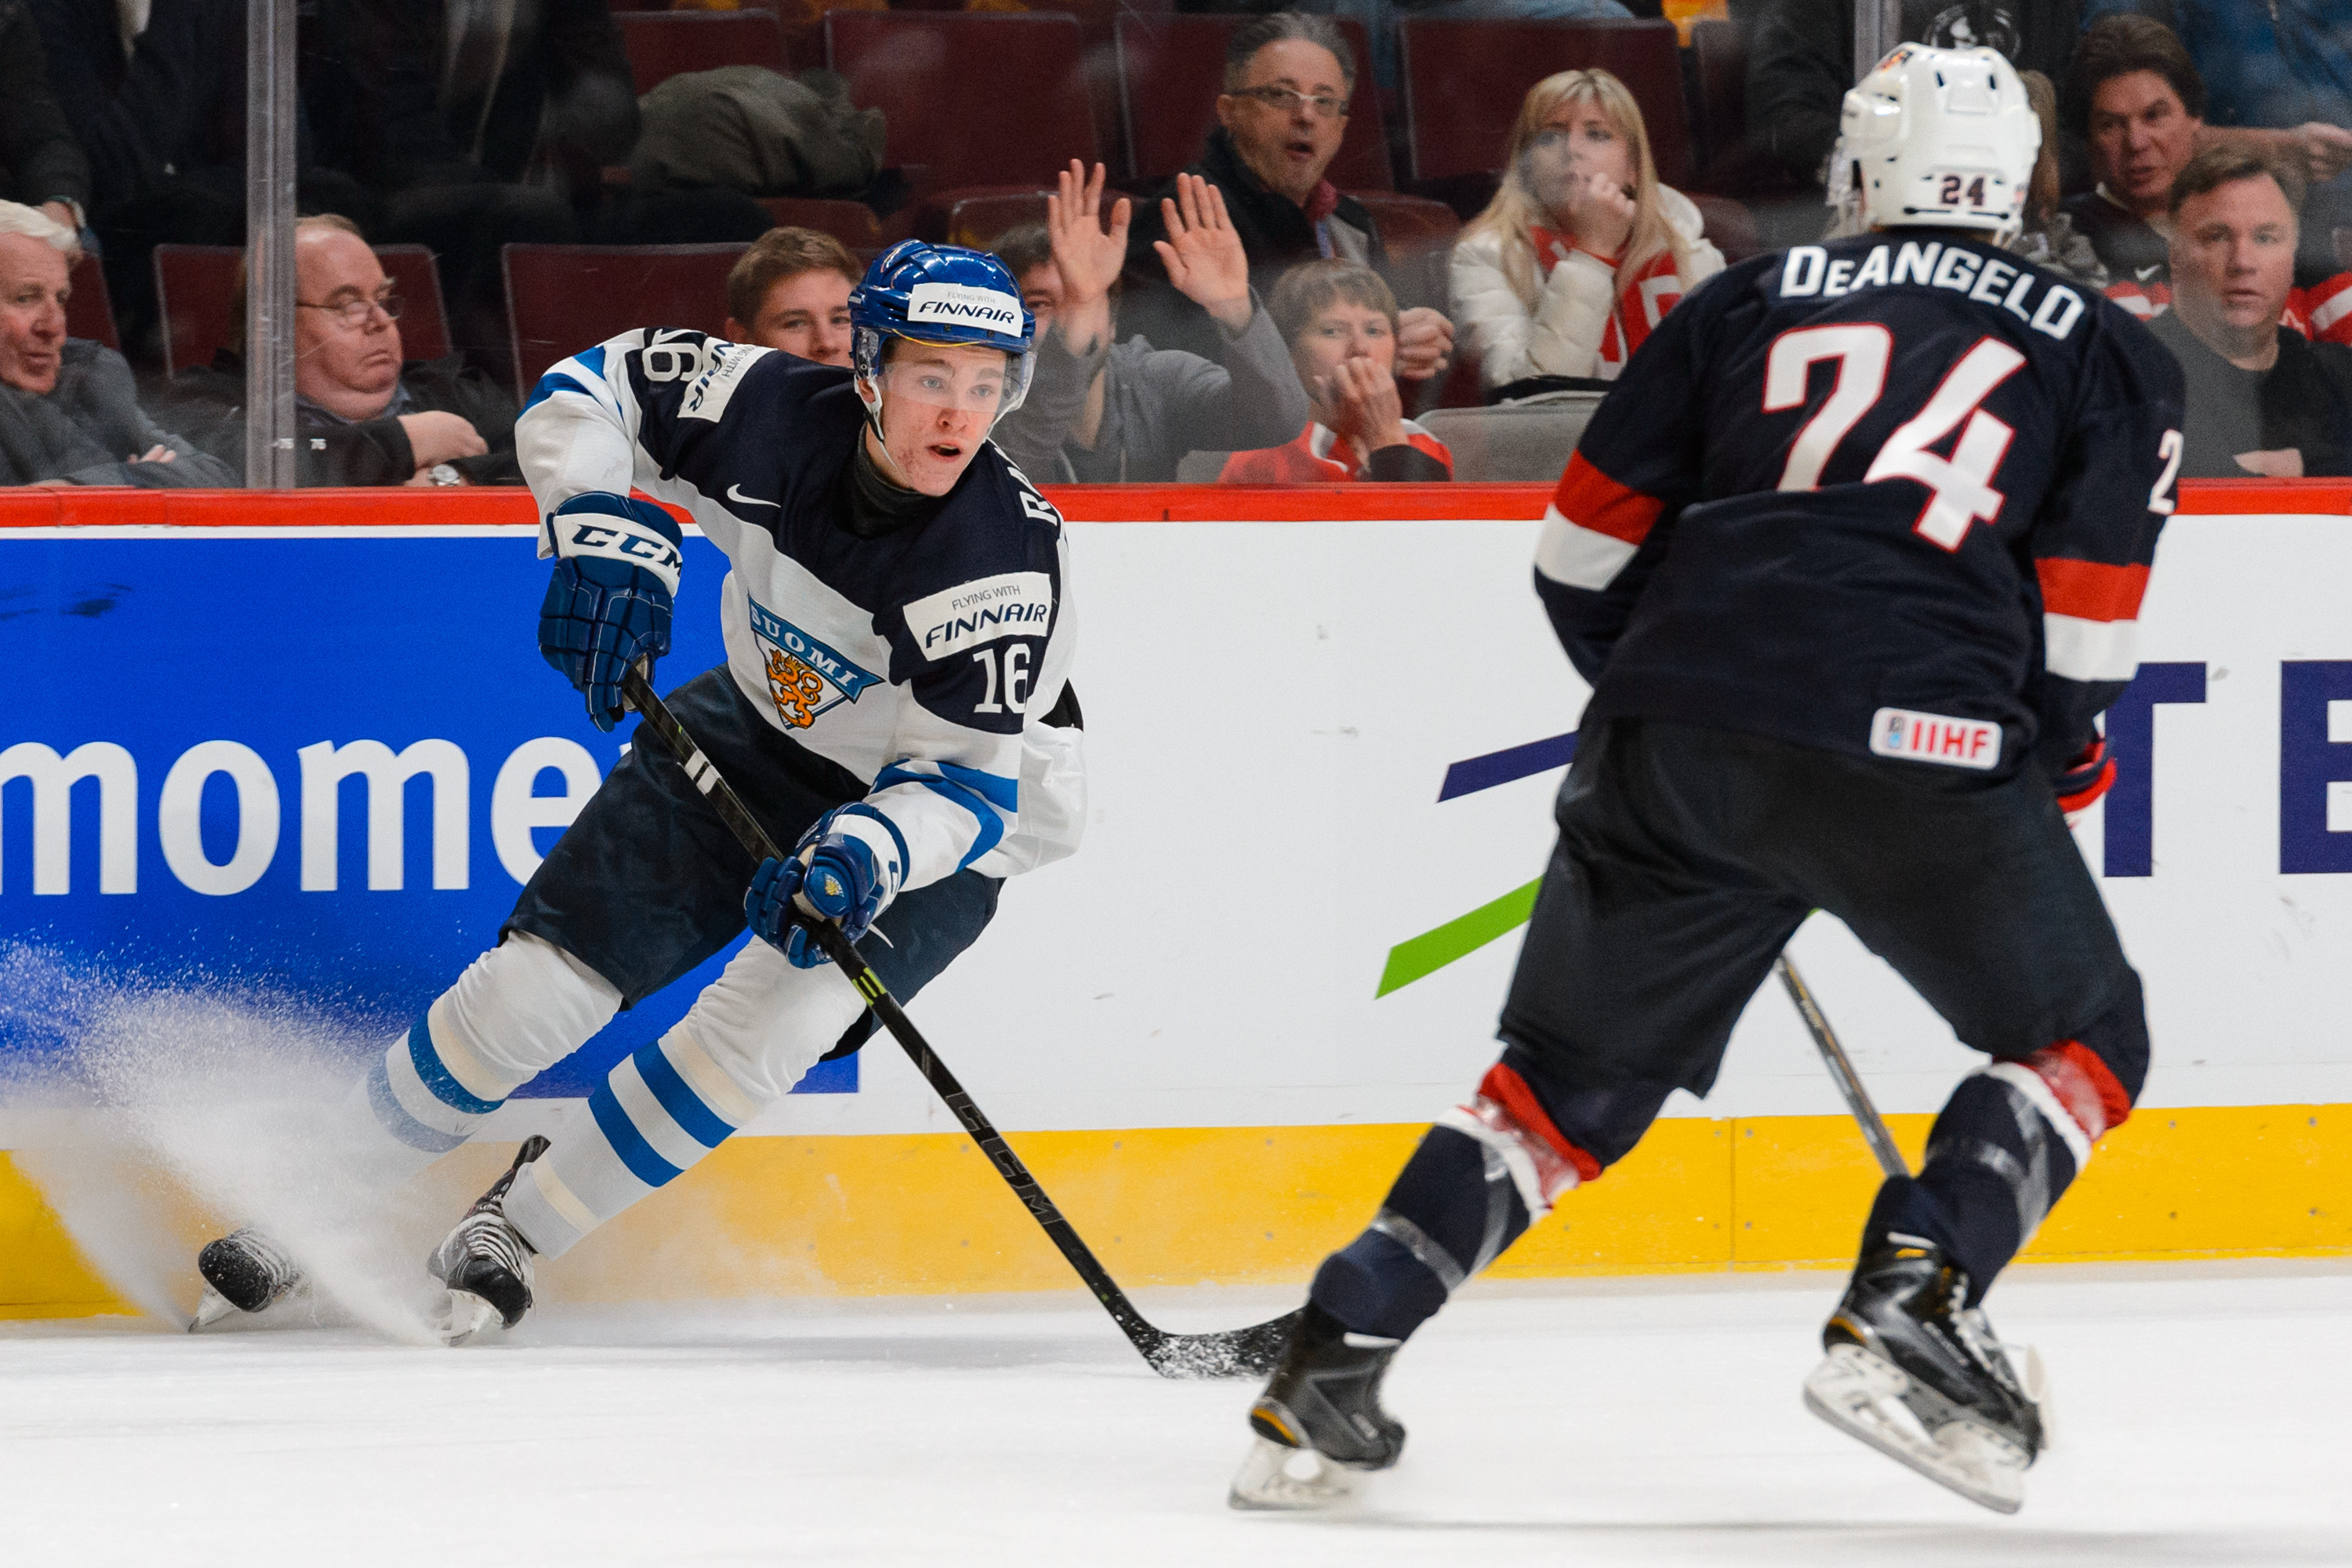 The first name on our 2015 NHL Entry Draft Wish List is Mikko Rantanen